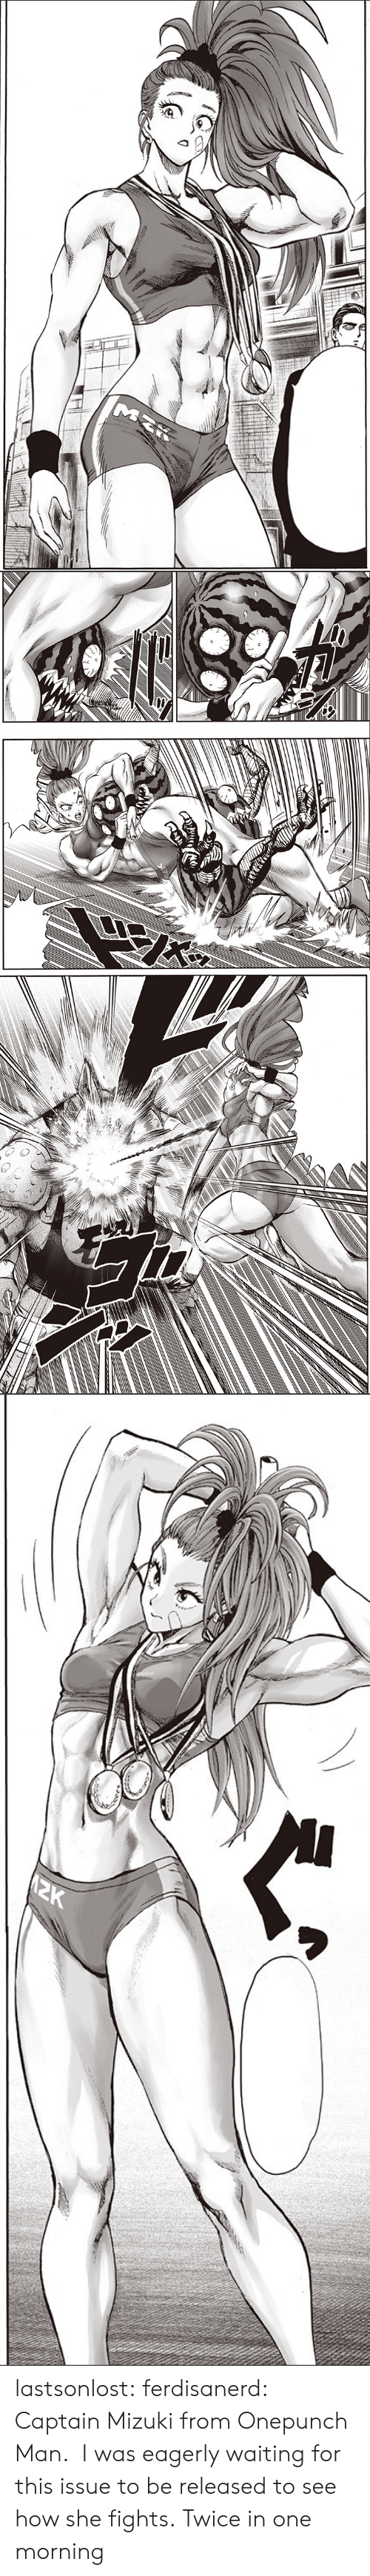 Tumblr, Blog, and Waiting...: lastsonlost: ferdisanerd:   Captain Mizuki from Onepunch Man.  I was eagerly waiting for this issue to be released to see how she fights.   Twice in one morning